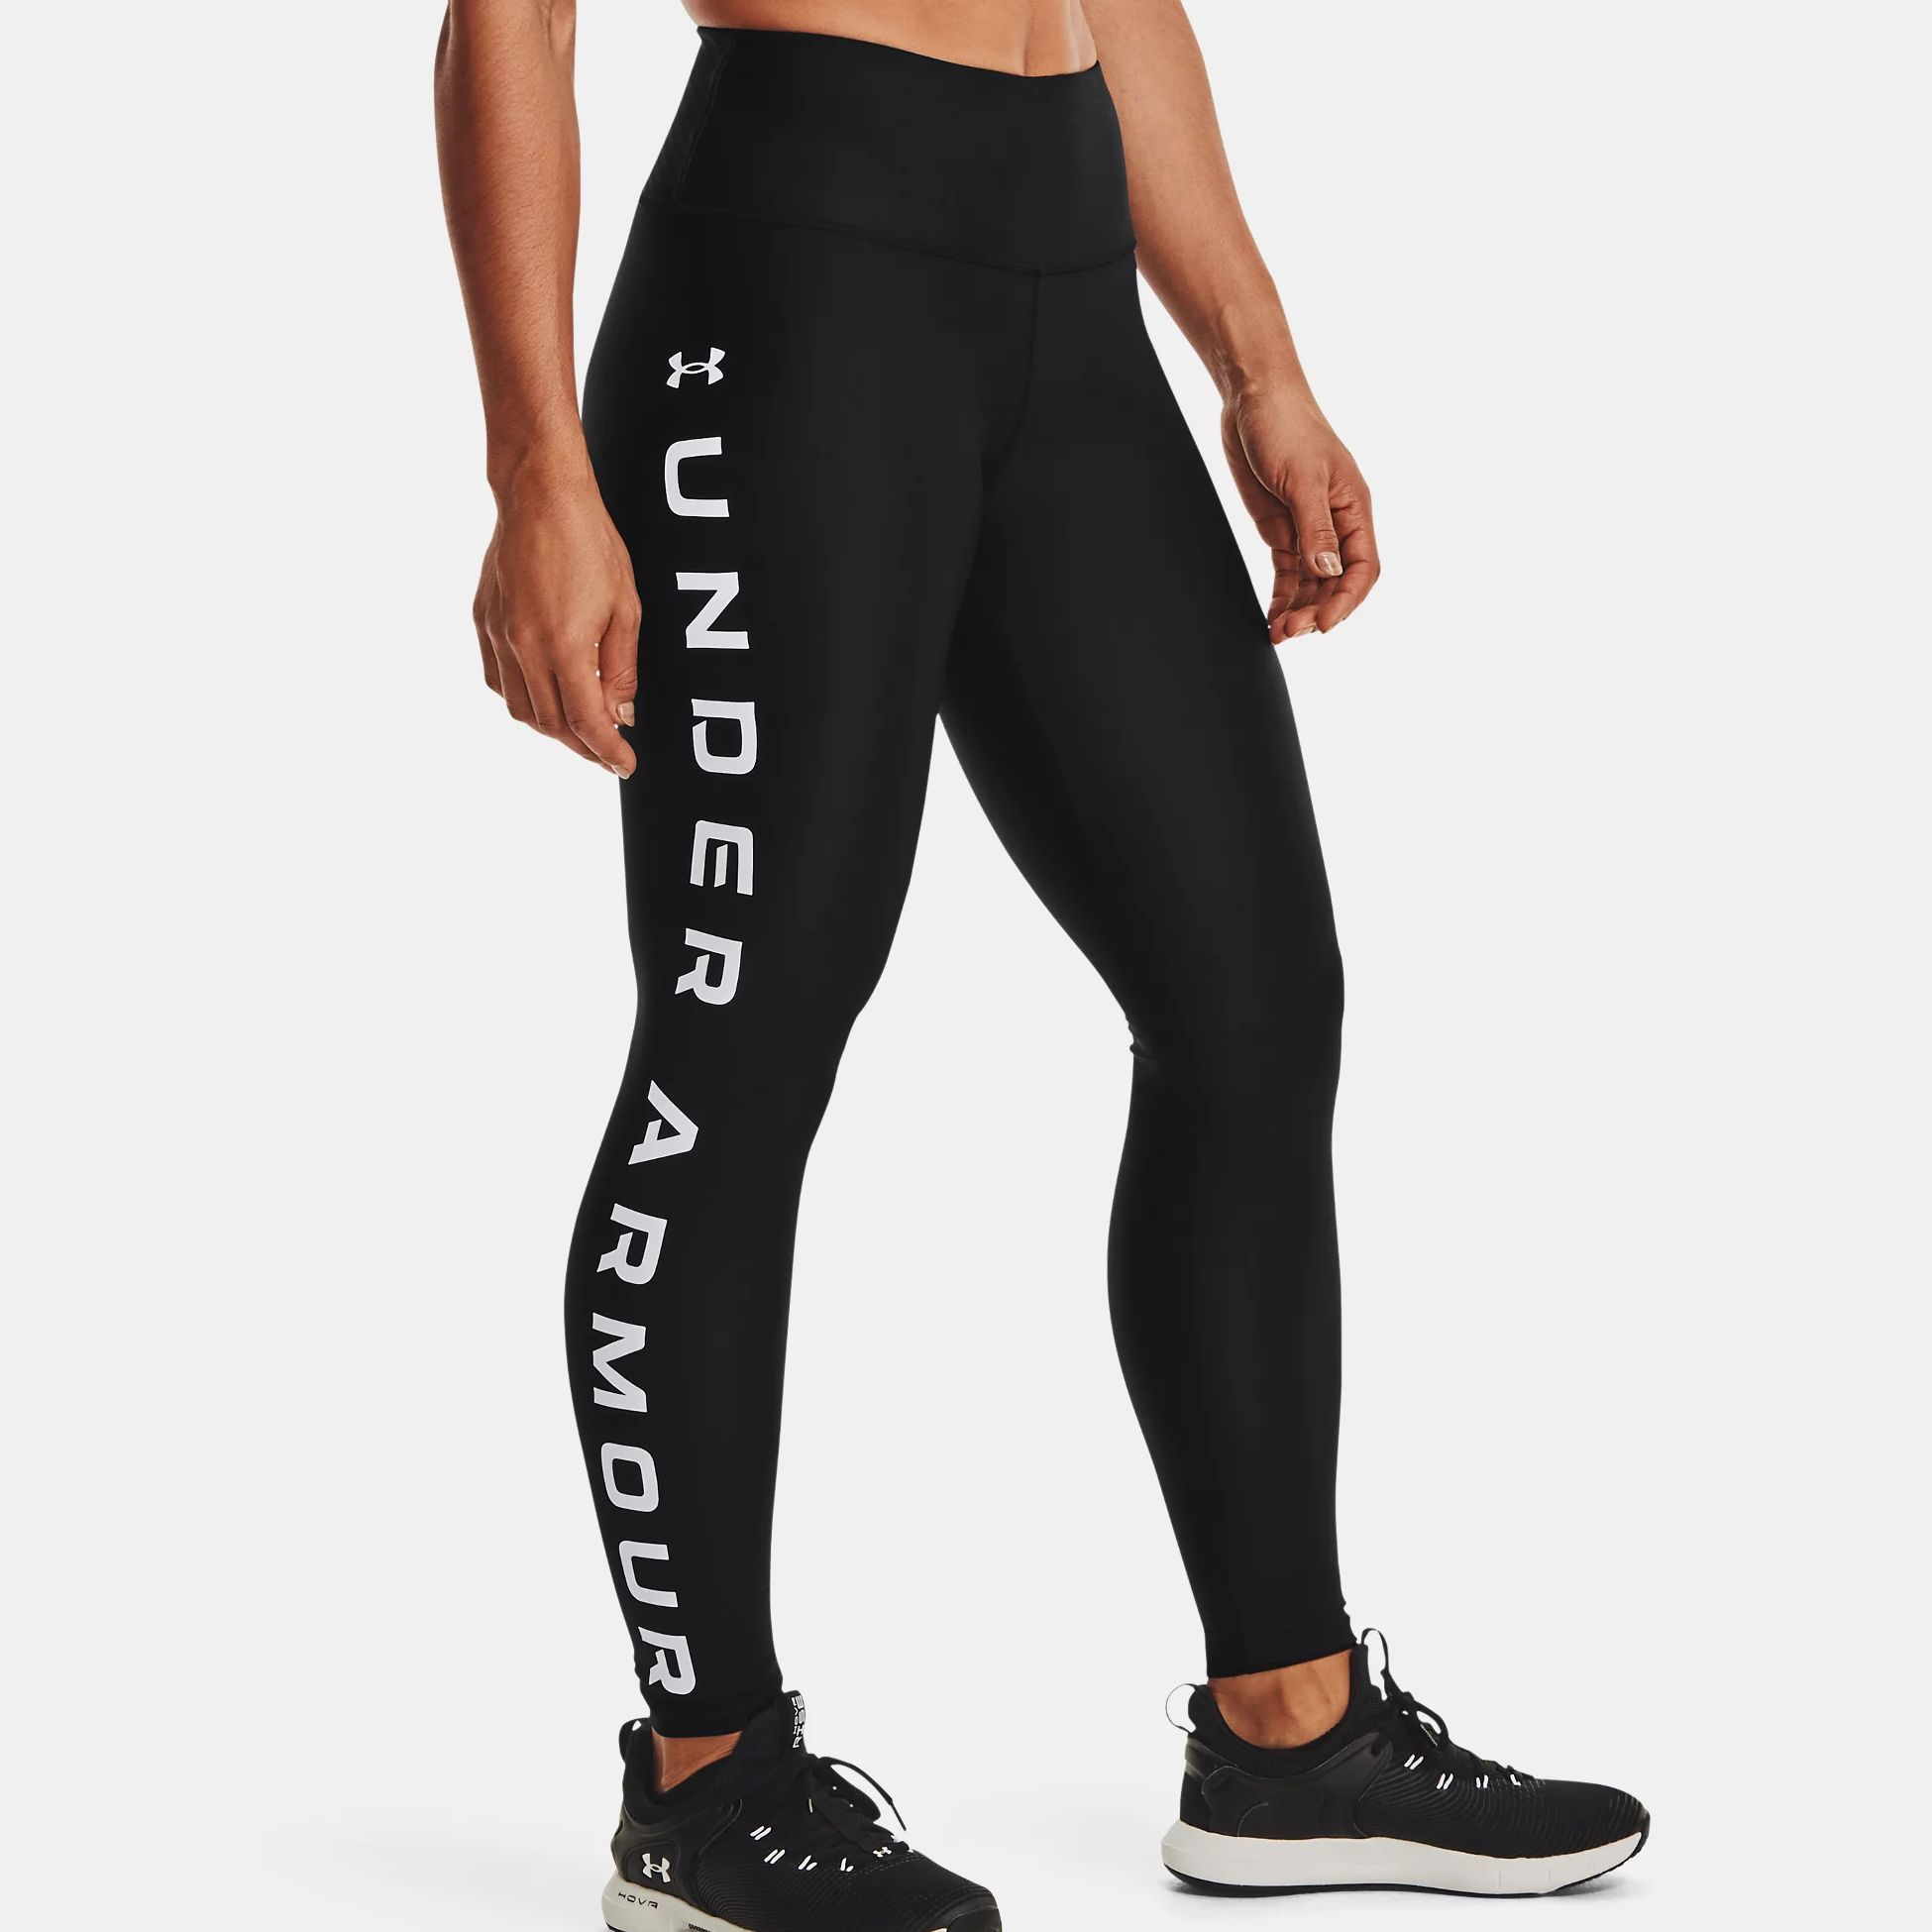 Clothing -  under armour HG Armour No-Slip Waistband Branded Leggings 1046